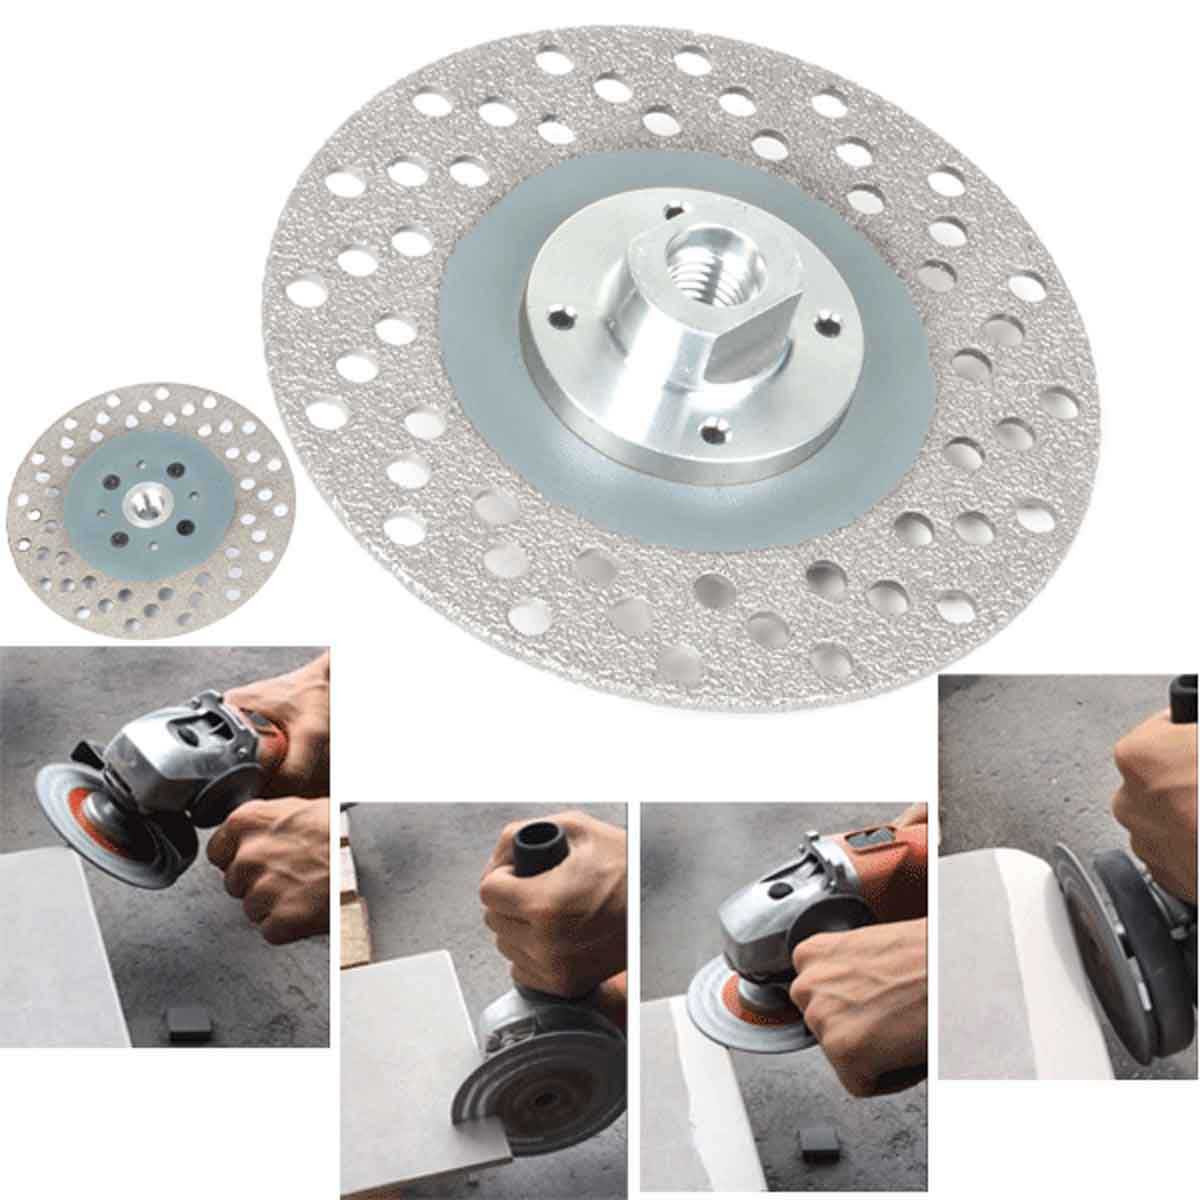 STL125GG Medium Grit Diamond Cutting and Grinding Wheel